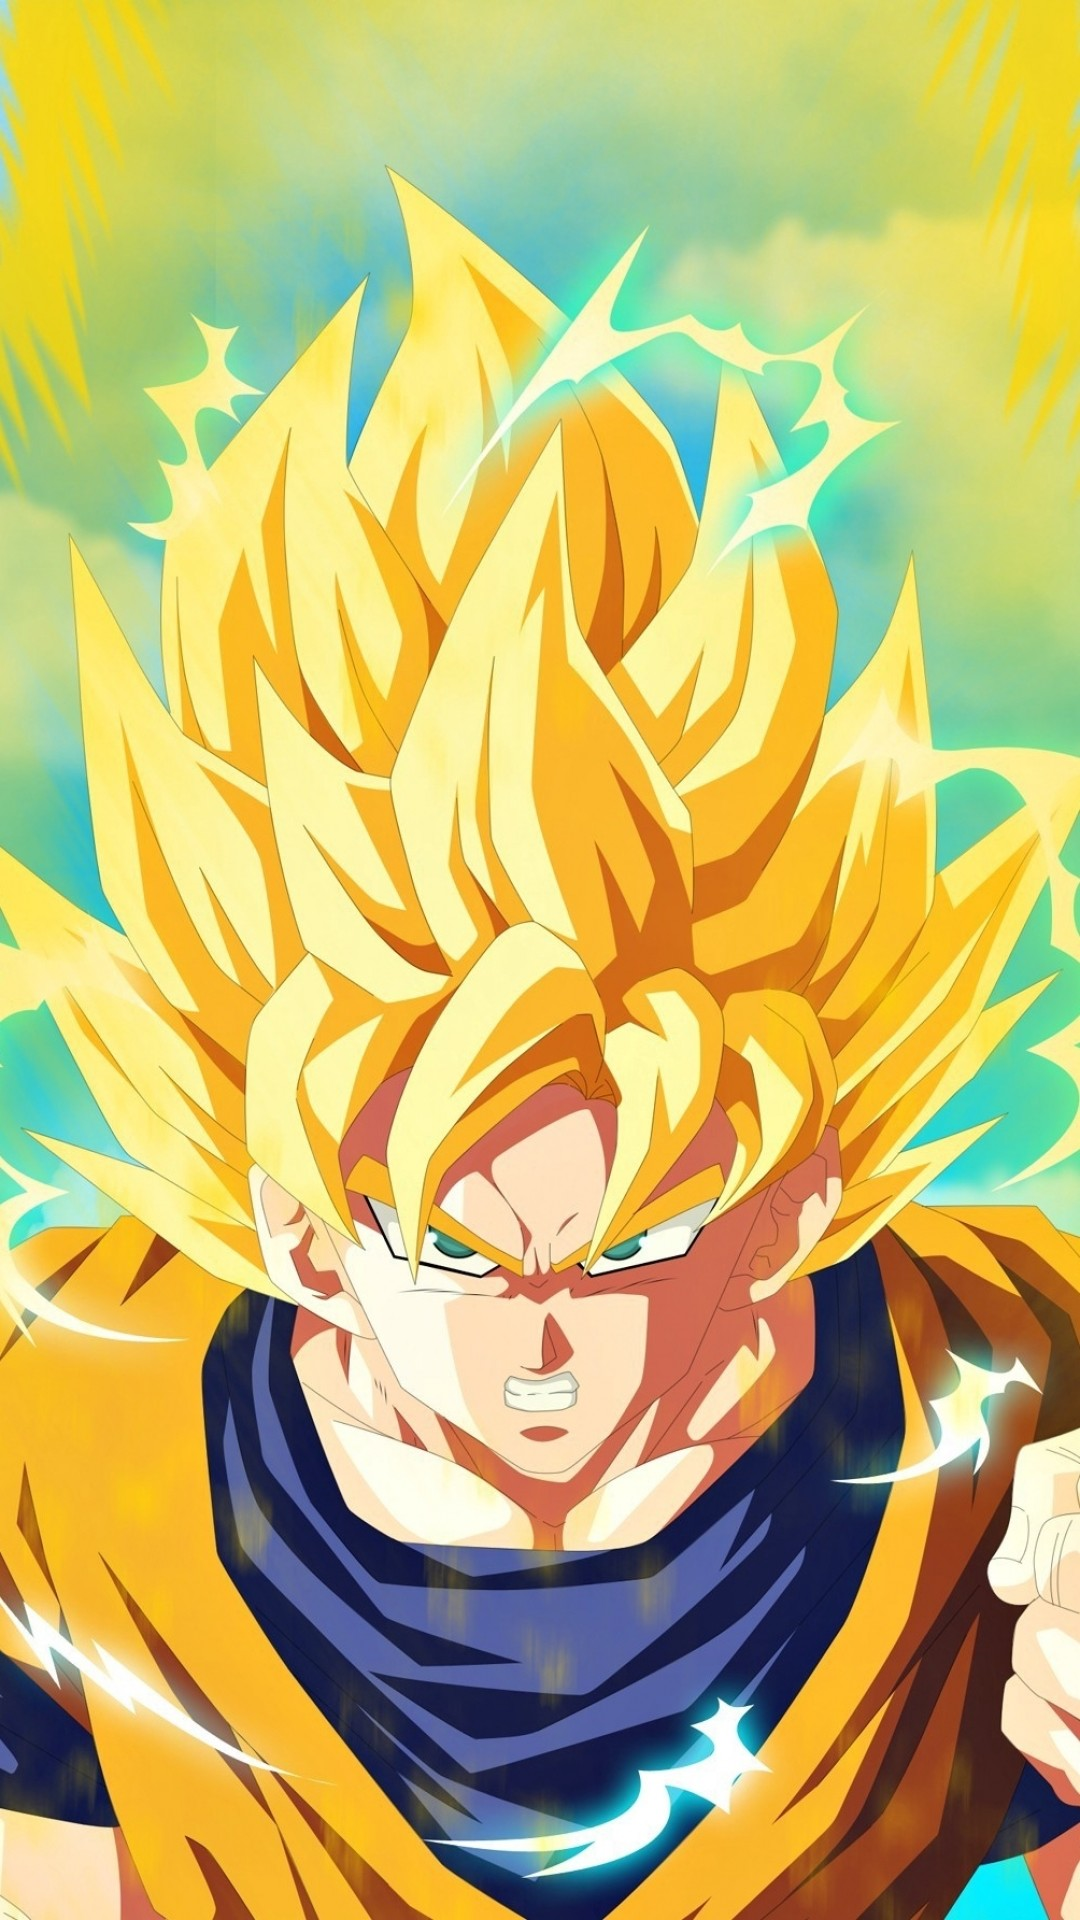 Dragon ball iphone wallpaper 64 images - Dragon ball z wallpaper iphone x ...